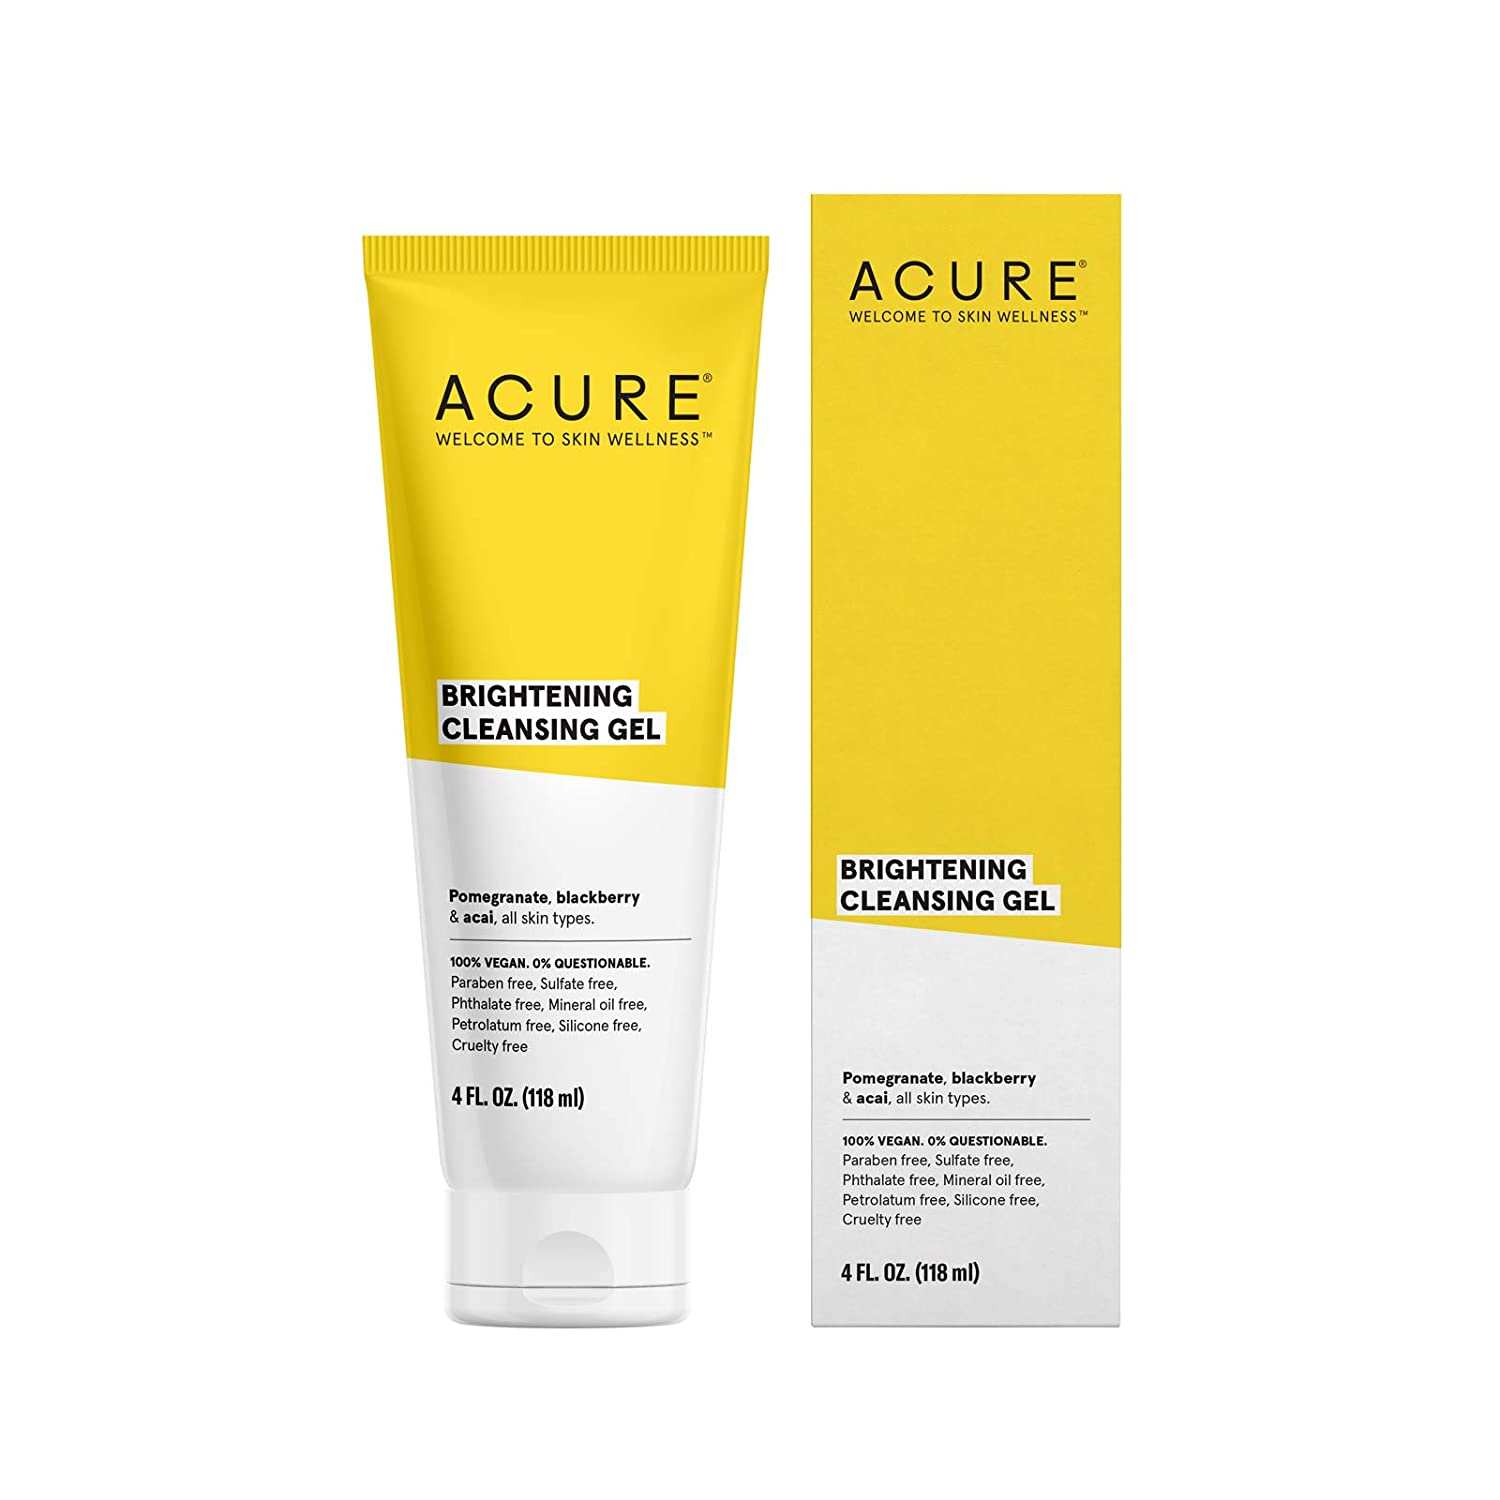 ACURE Brilliantly Brightening Cleansing Gel, 4oz ET1010